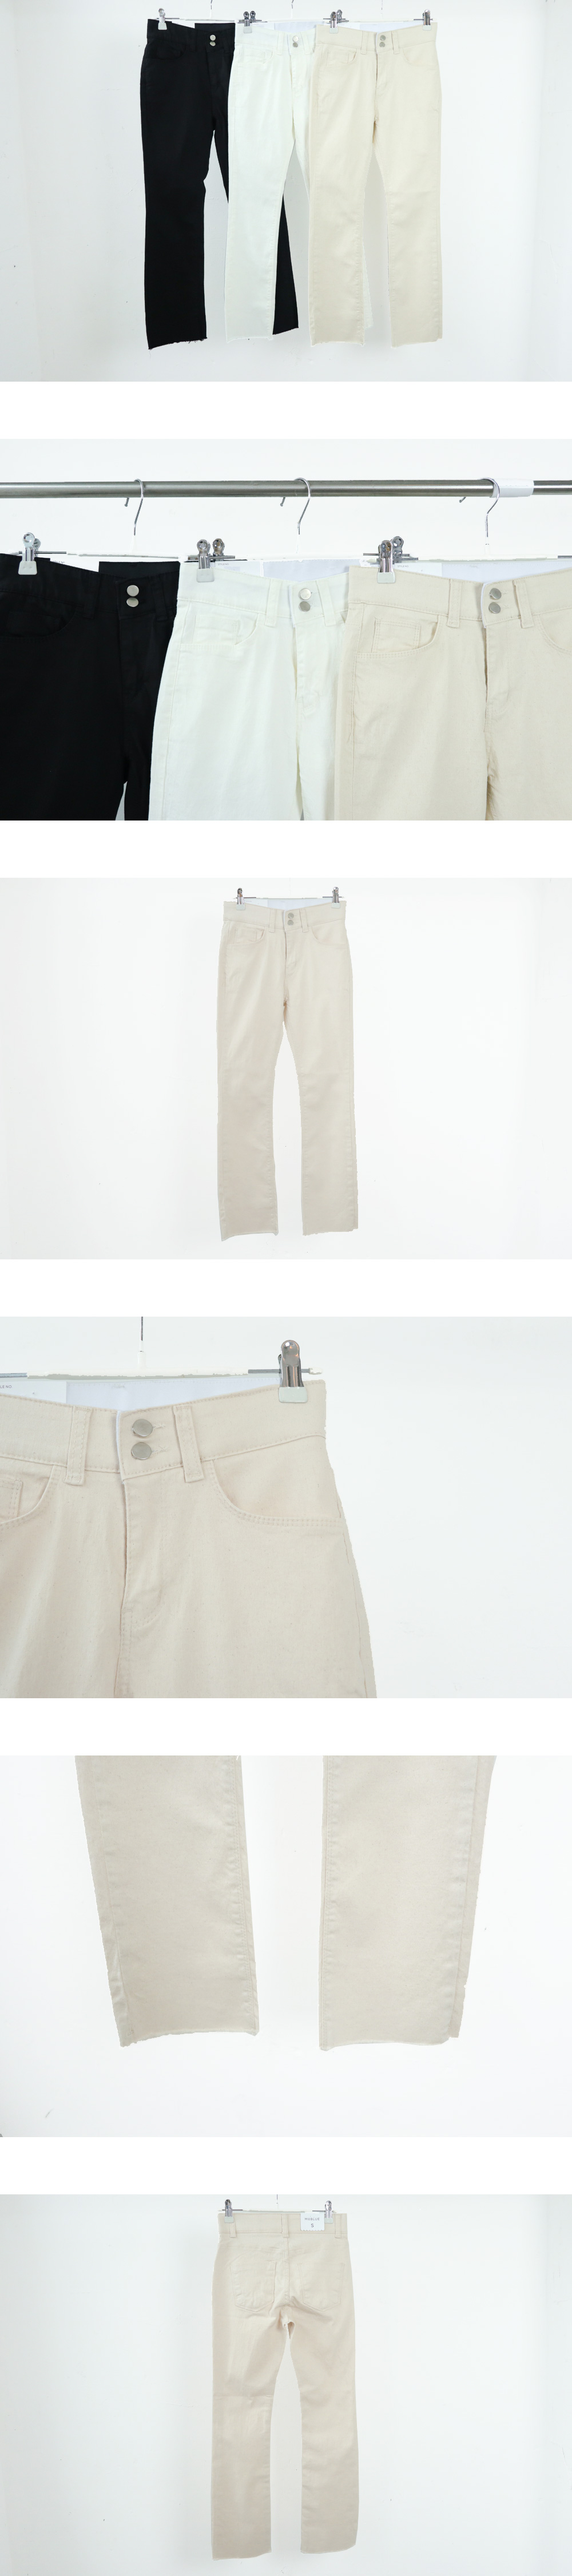 547 Summer 2-button Flared slim pants